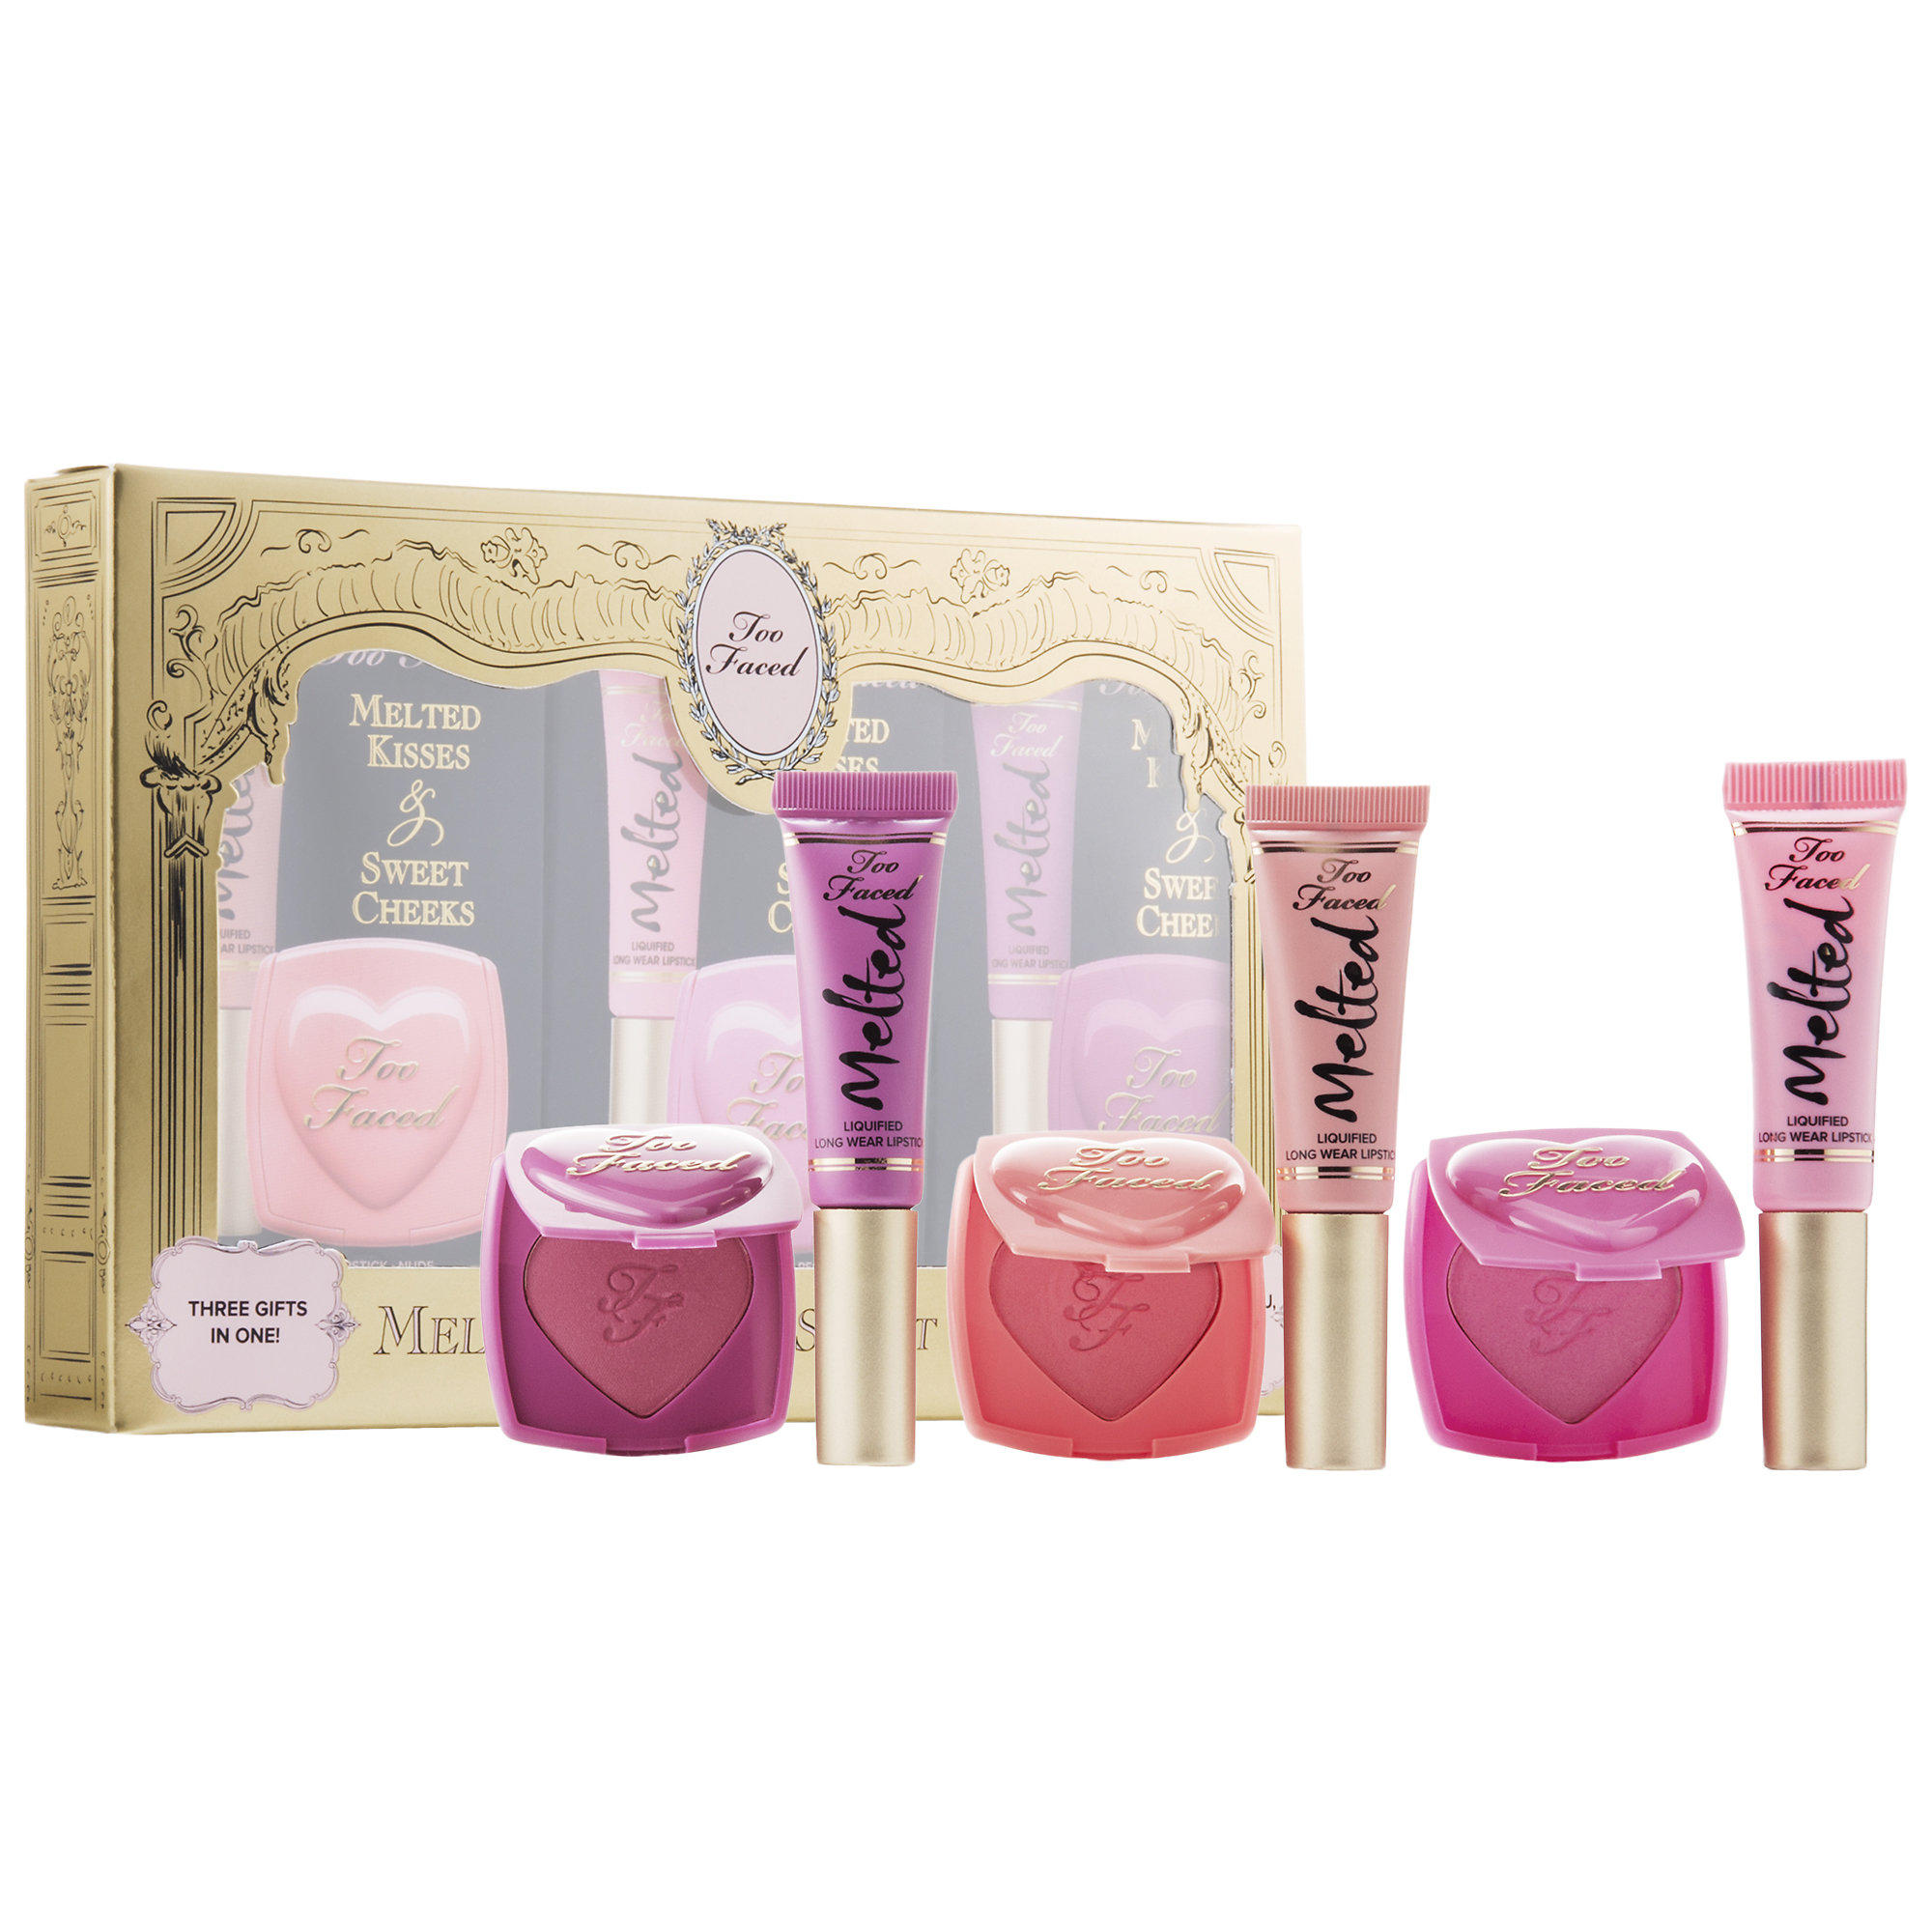 New ReleaseToo Faced launched Melted Kisses & Sweet Cheeks